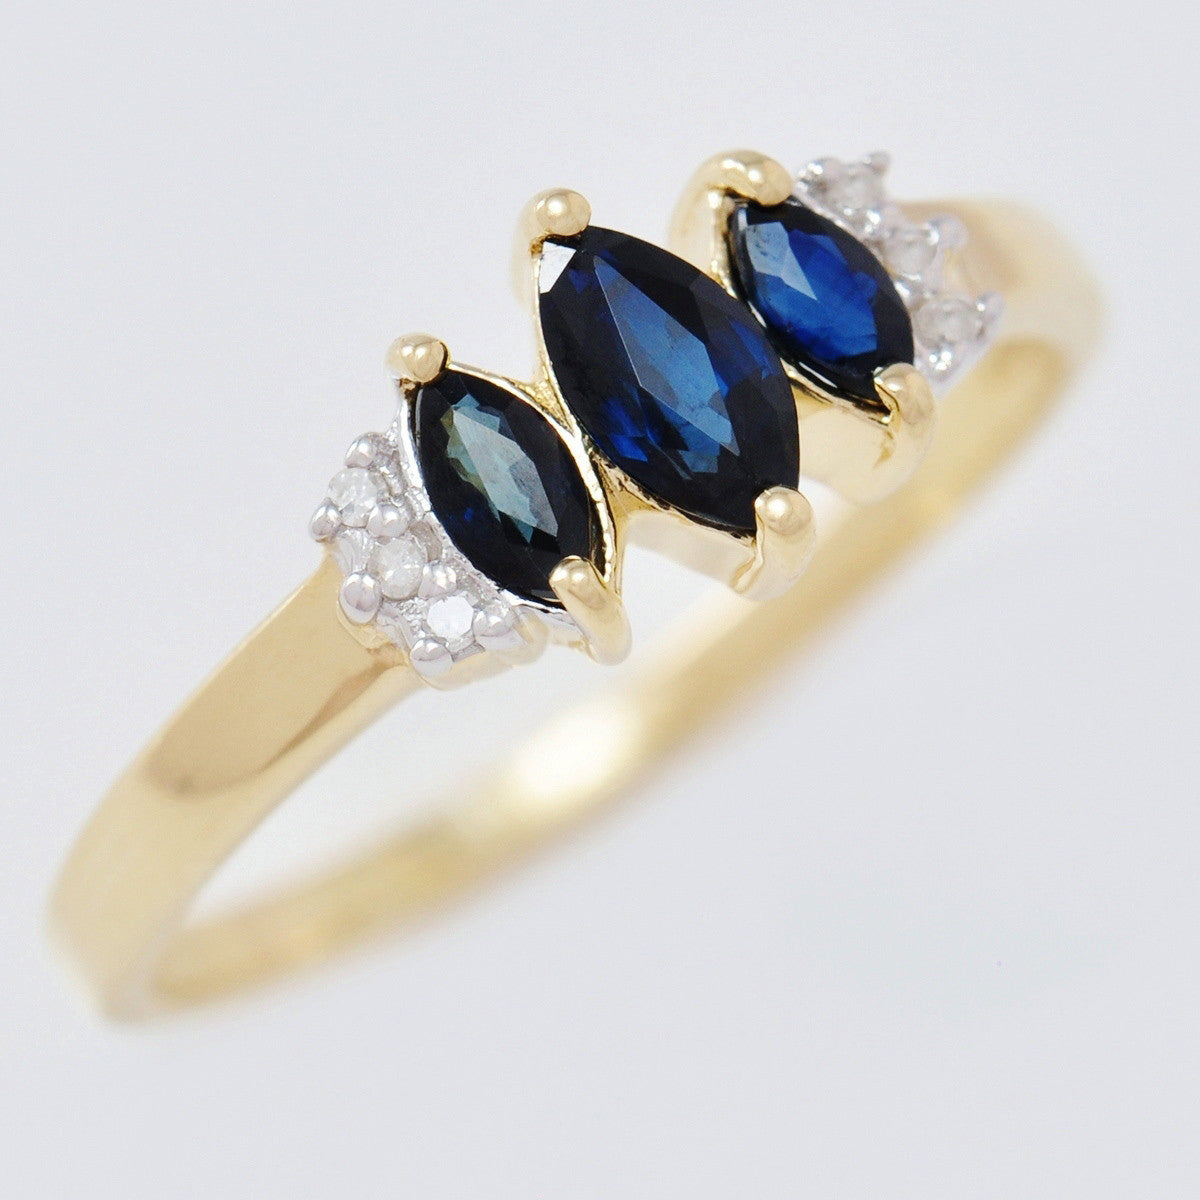 9K SOLID GOLD HANDMADE VINTAGE INSPIRED 0.70CT NATURAL SAPPHIRE RING WITH 6 DIAMONDS.